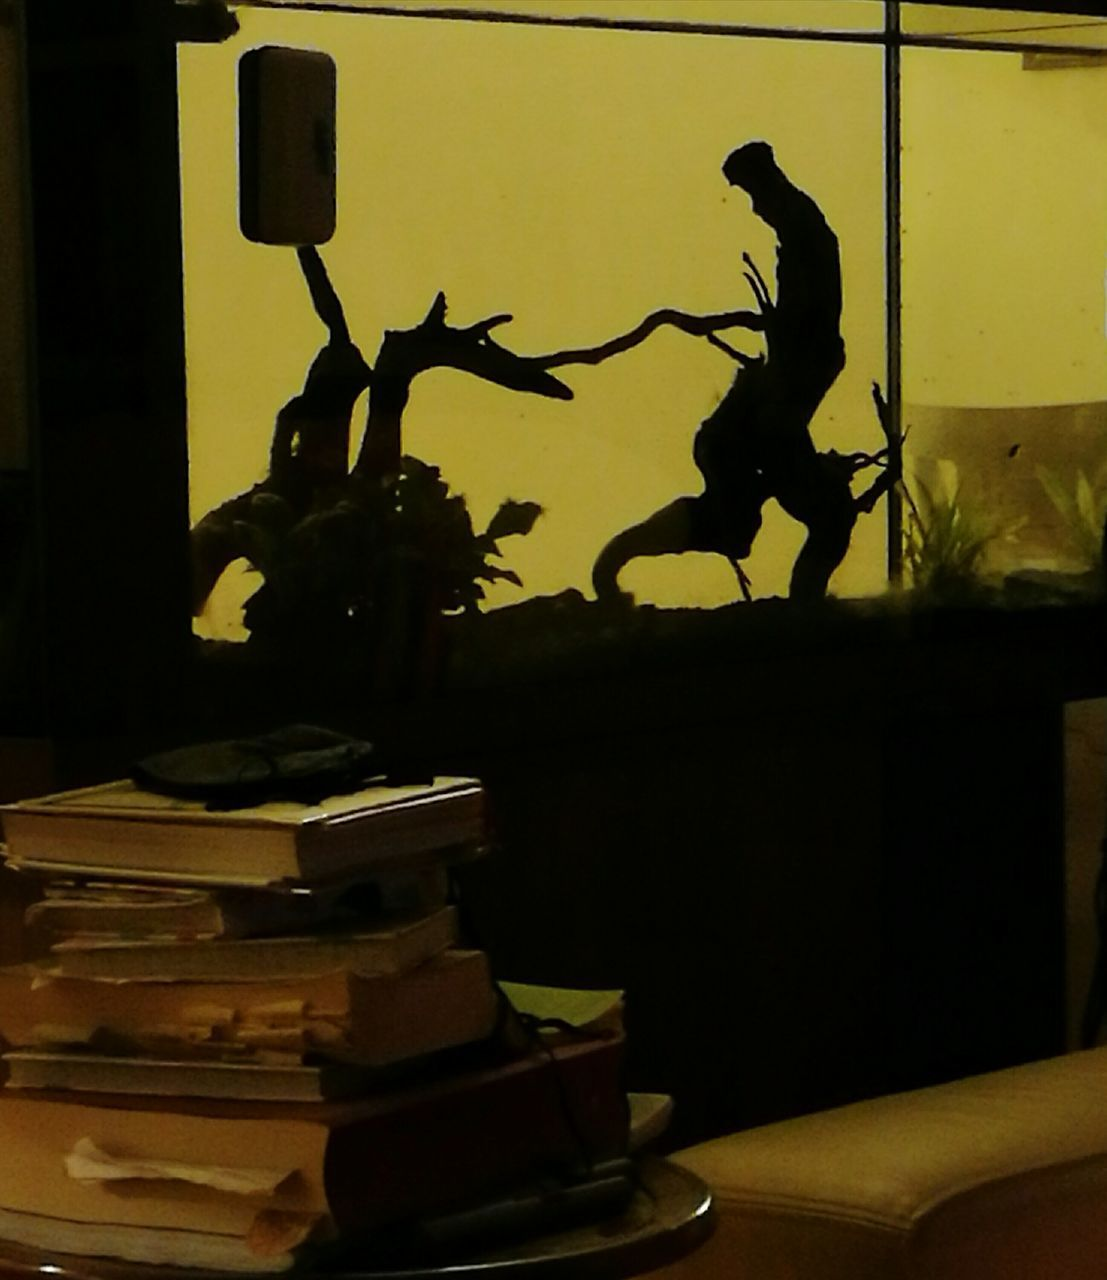 book, publication, table, stack, indoors, people, silhouette, representation, activity, human representation, technology, balance, men, male likeness, creativity, real people, nature, leisure activity